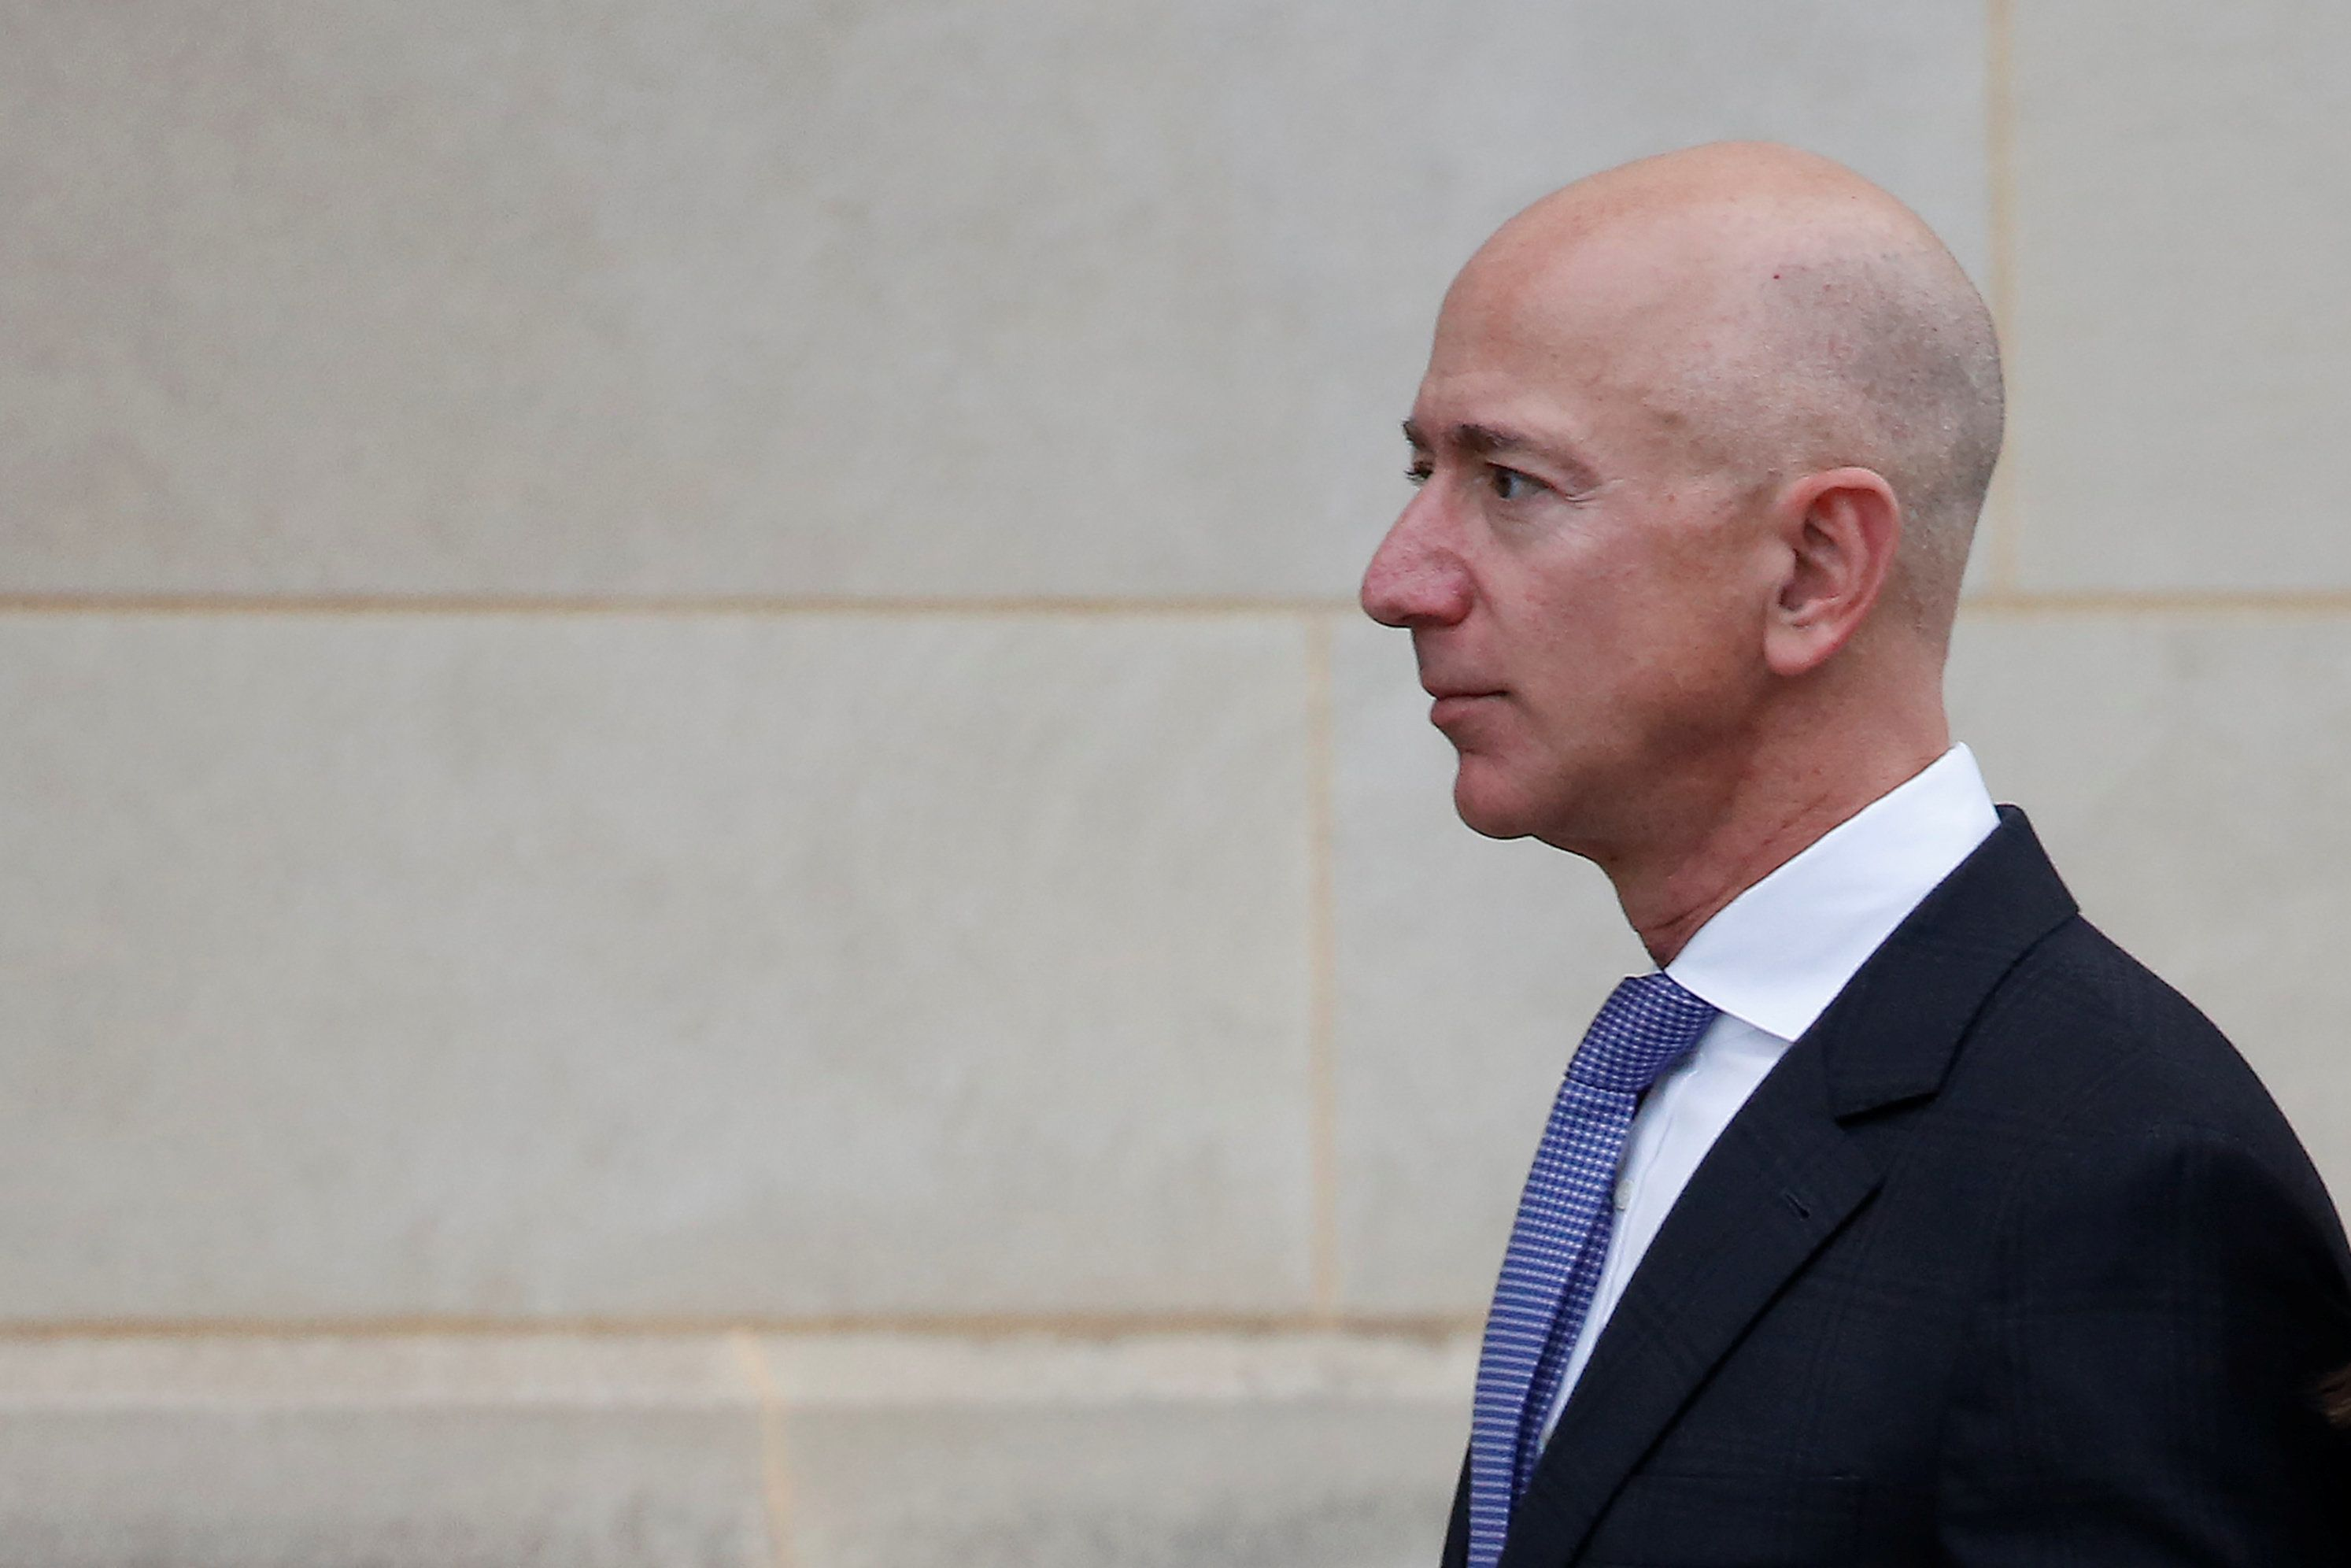 'Stop BEZOS Act' introduced in Senate targeting large employers